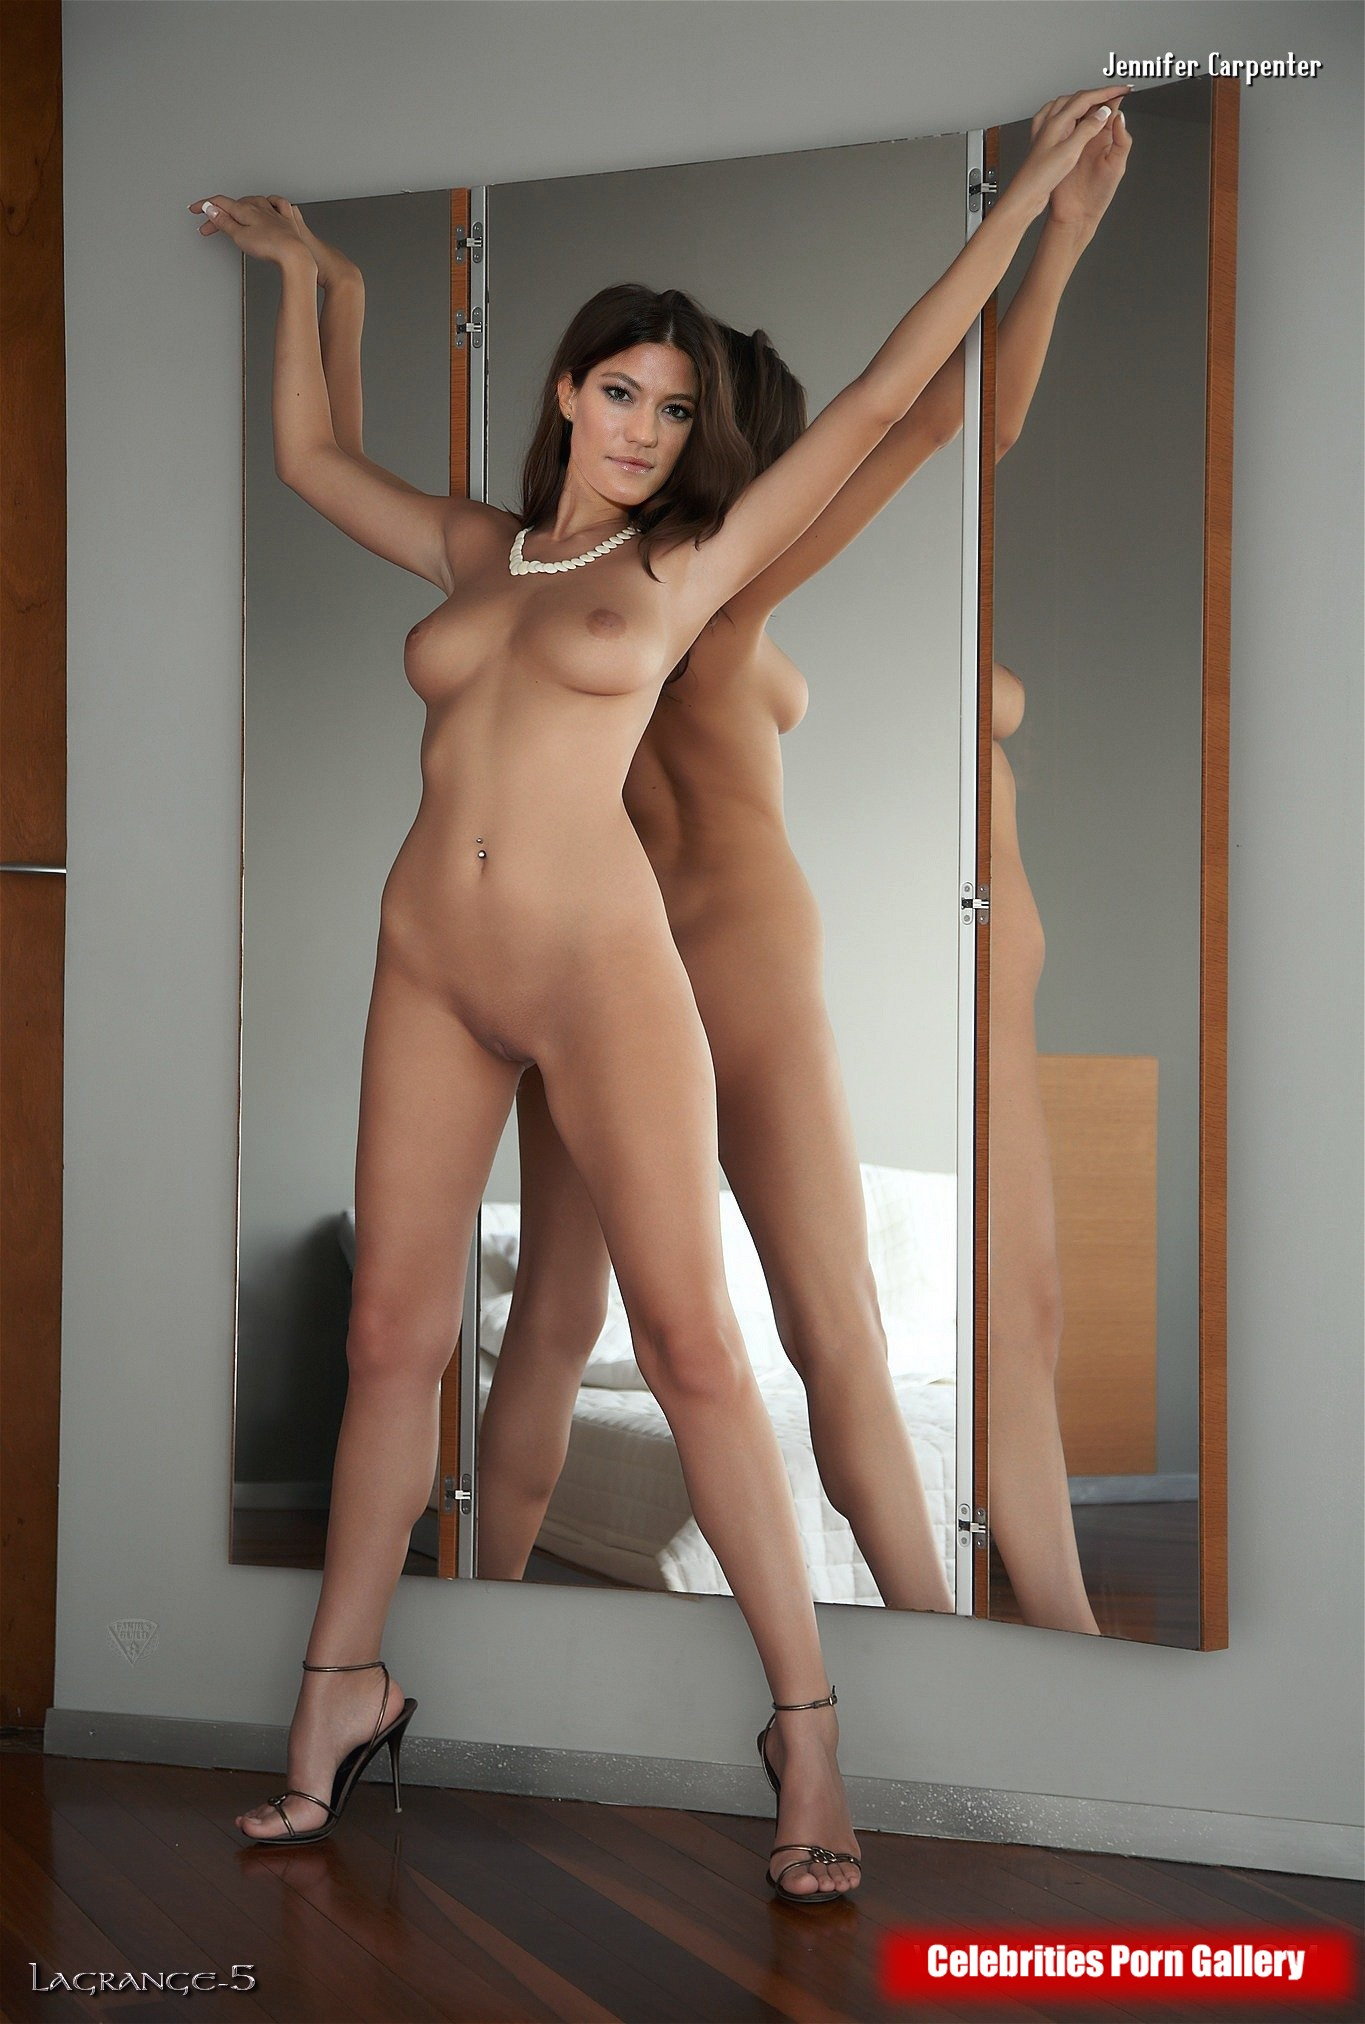 Jennifer Leann Carpenter Nude 104